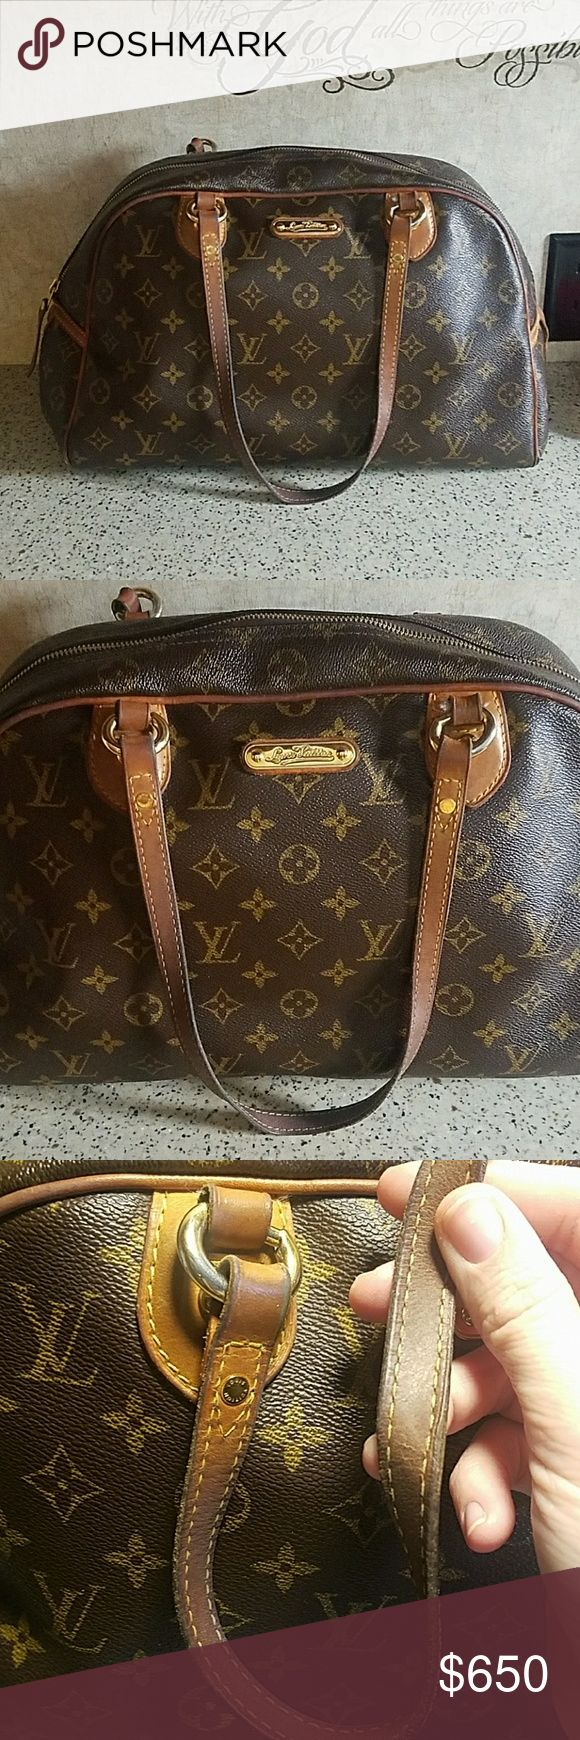 Authentic Louis Vuitton Montorgueil GM Authenticated using ProAuthenticators authentication service on Facebook.  This bag does show some wear as shown in the photos.  Please review photos carefully as they are a big part of the description.  Darkening of the vachetta on the handles,  some hardware tarnish,  some loose threading (as shown),  exposed piping on 3 corners,  darkening of vachetta where piping is, some staining inside and some wear inside close to where the zipper is located…